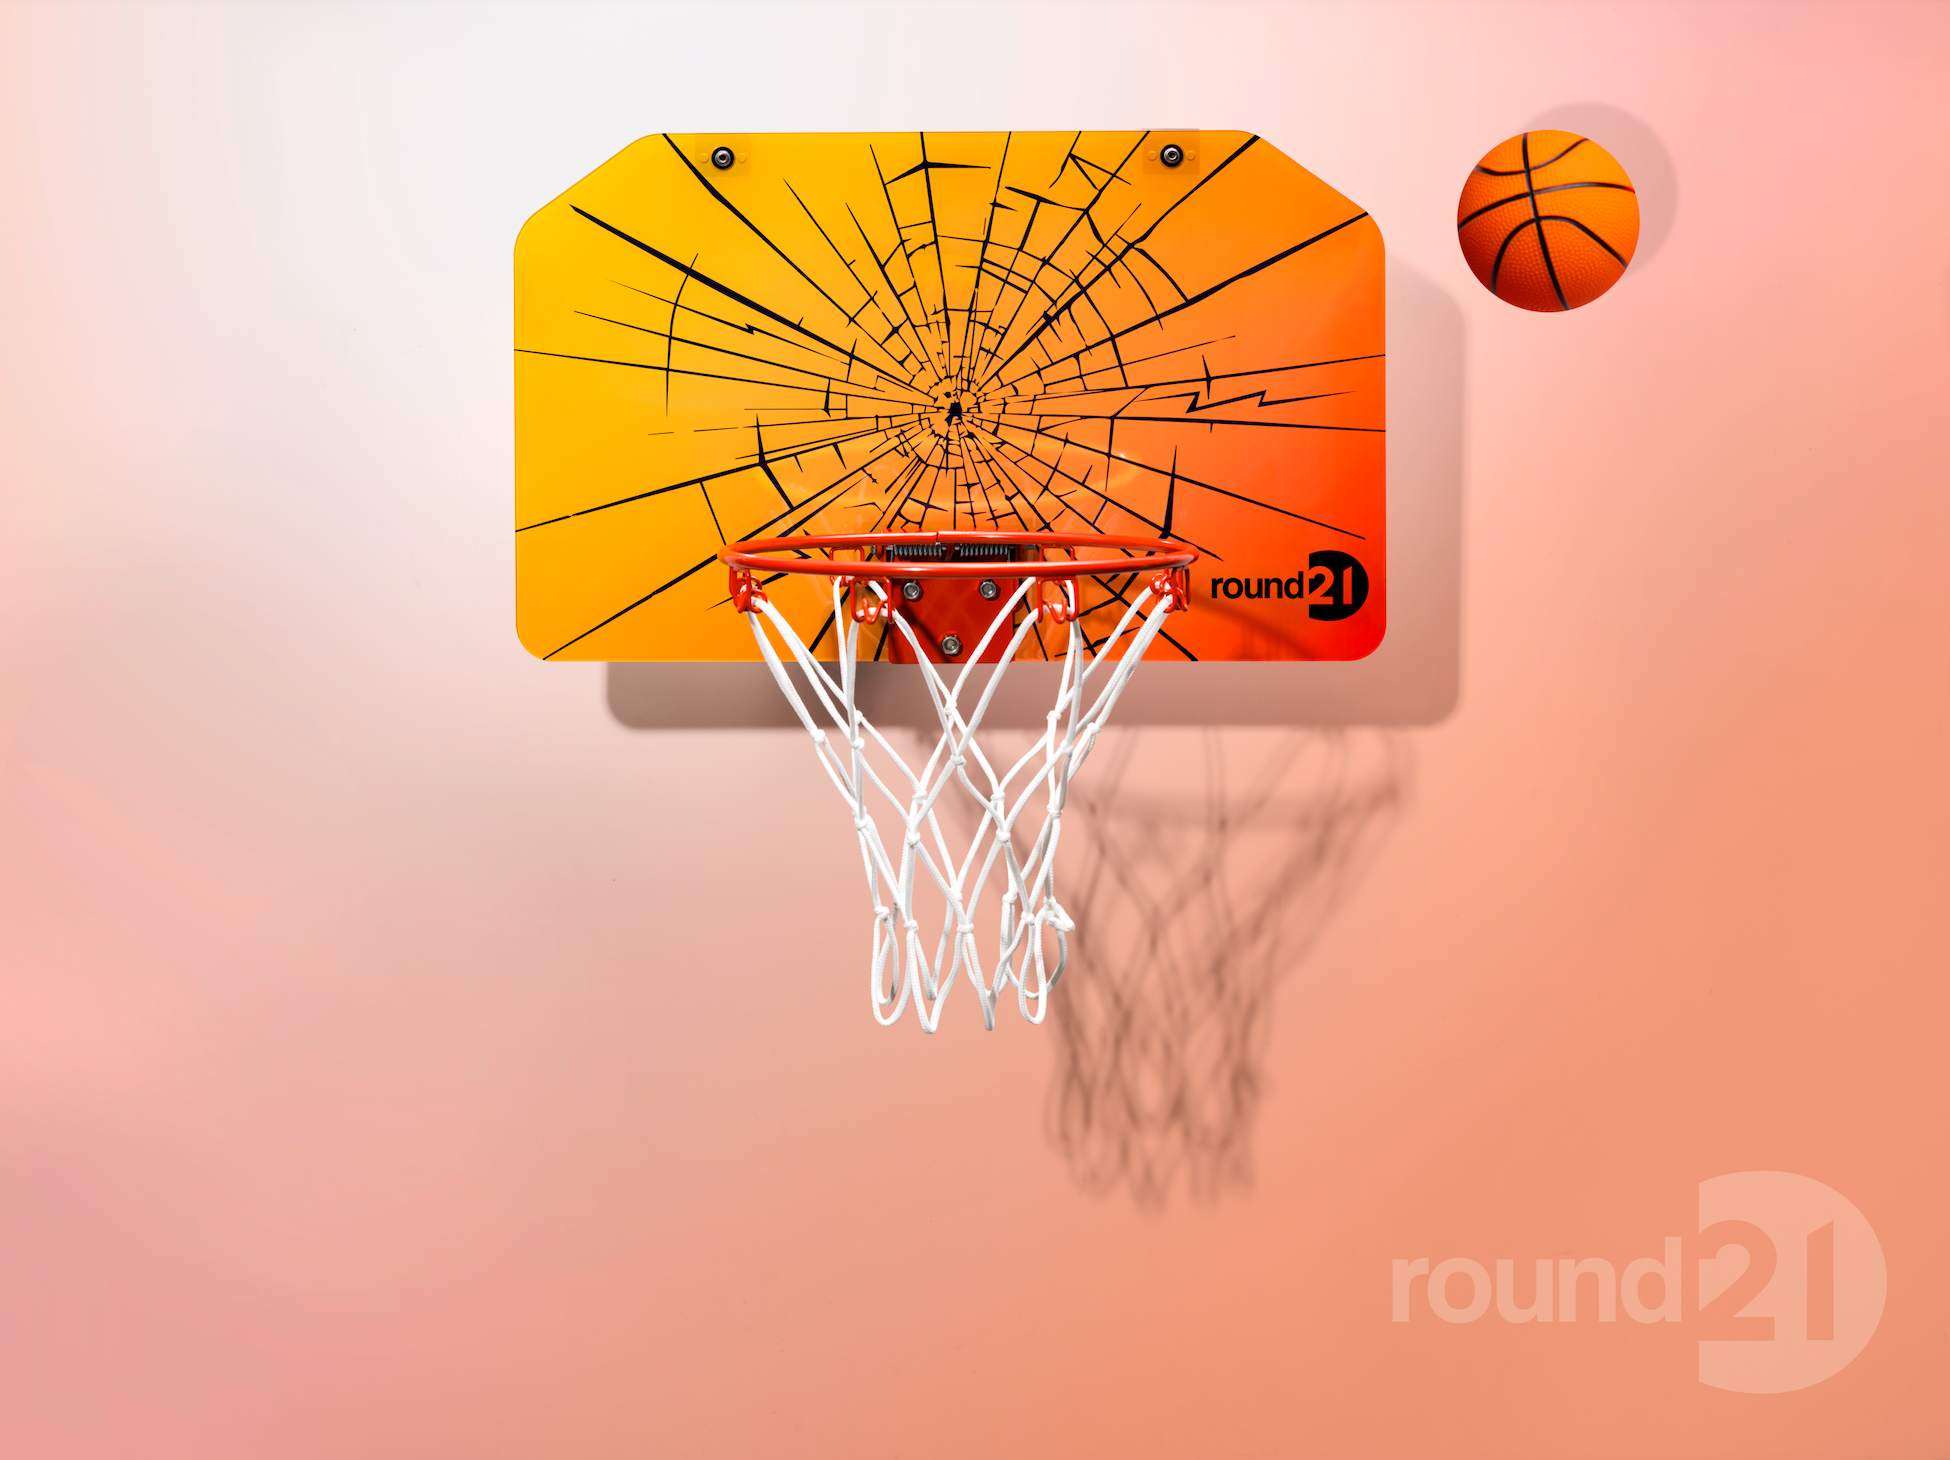 round21 Dropping WNBA-Inspired Backboard In Honor of Women's History Month